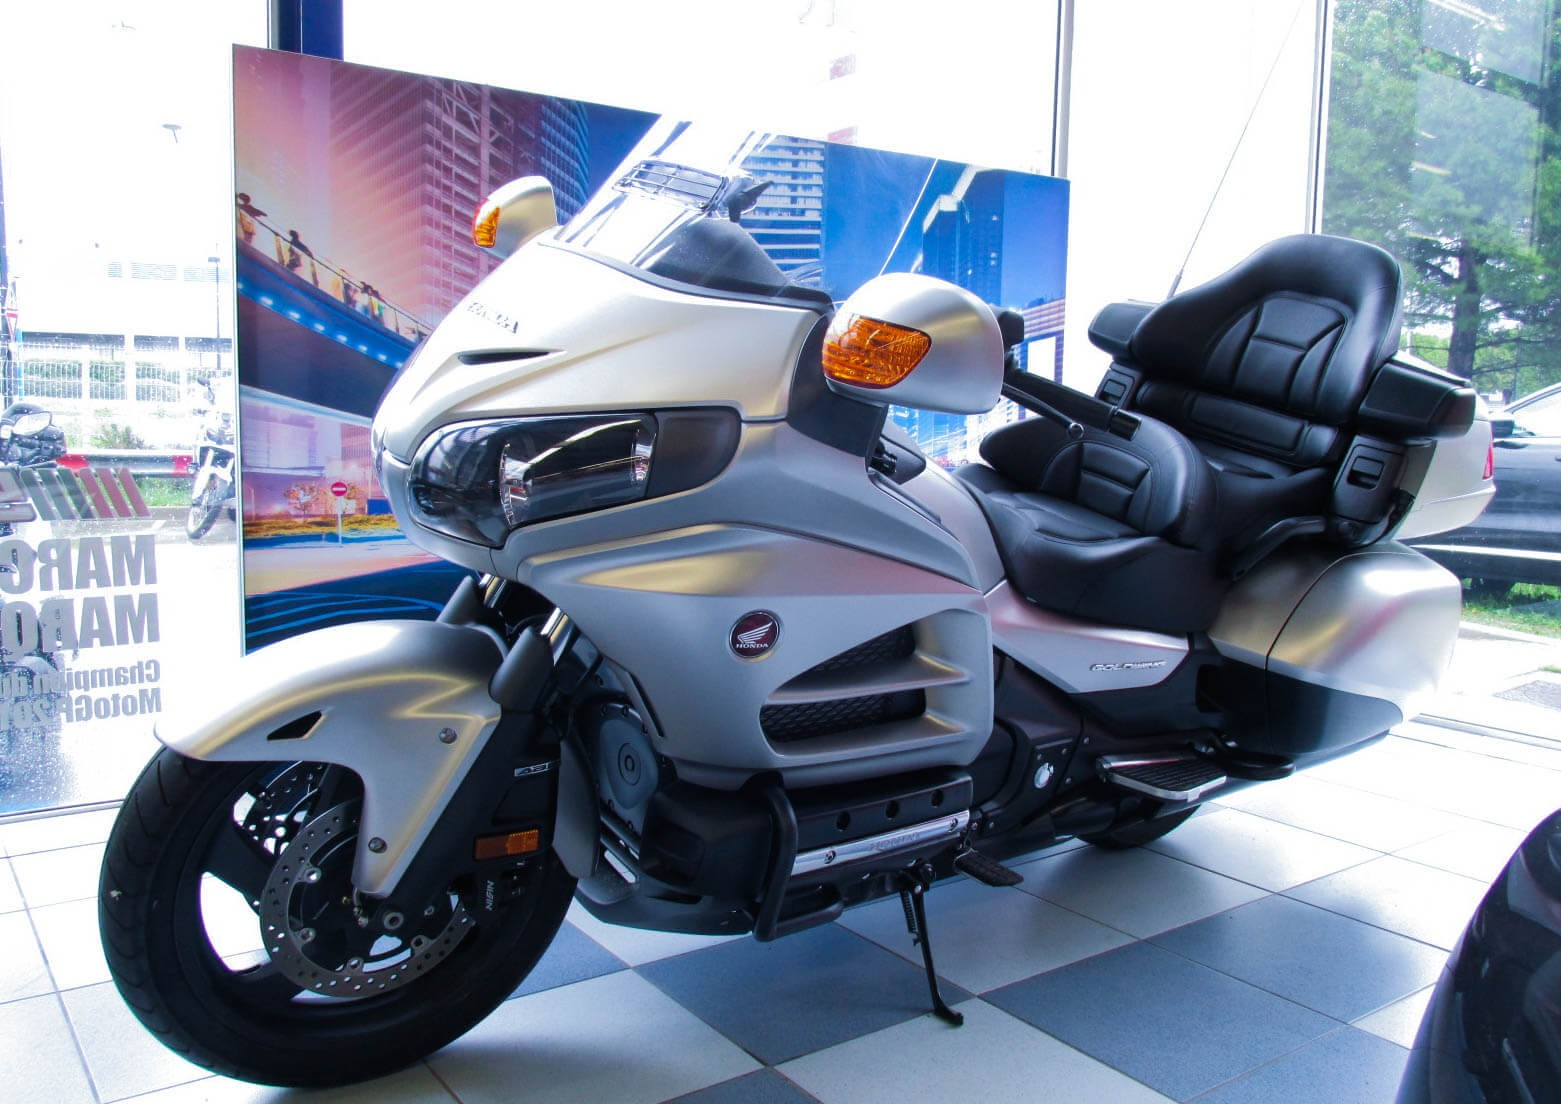 location honda goldwing 1800 montpellier easy renter. Black Bedroom Furniture Sets. Home Design Ideas